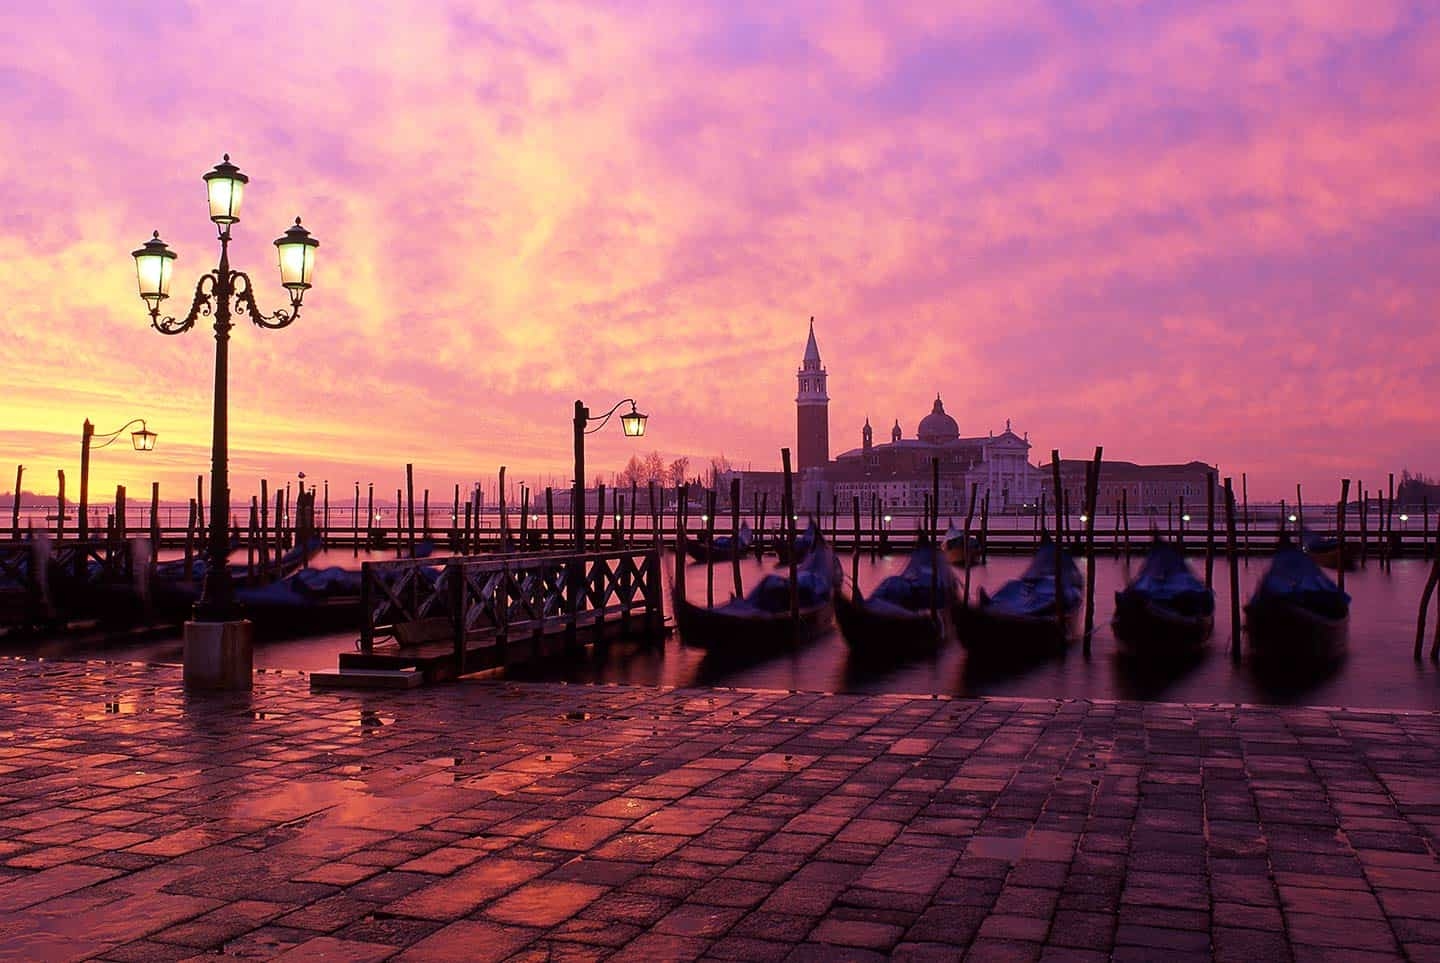 Image of San Giorgio Maggiore church in Venice Italy during a spectacular dawn